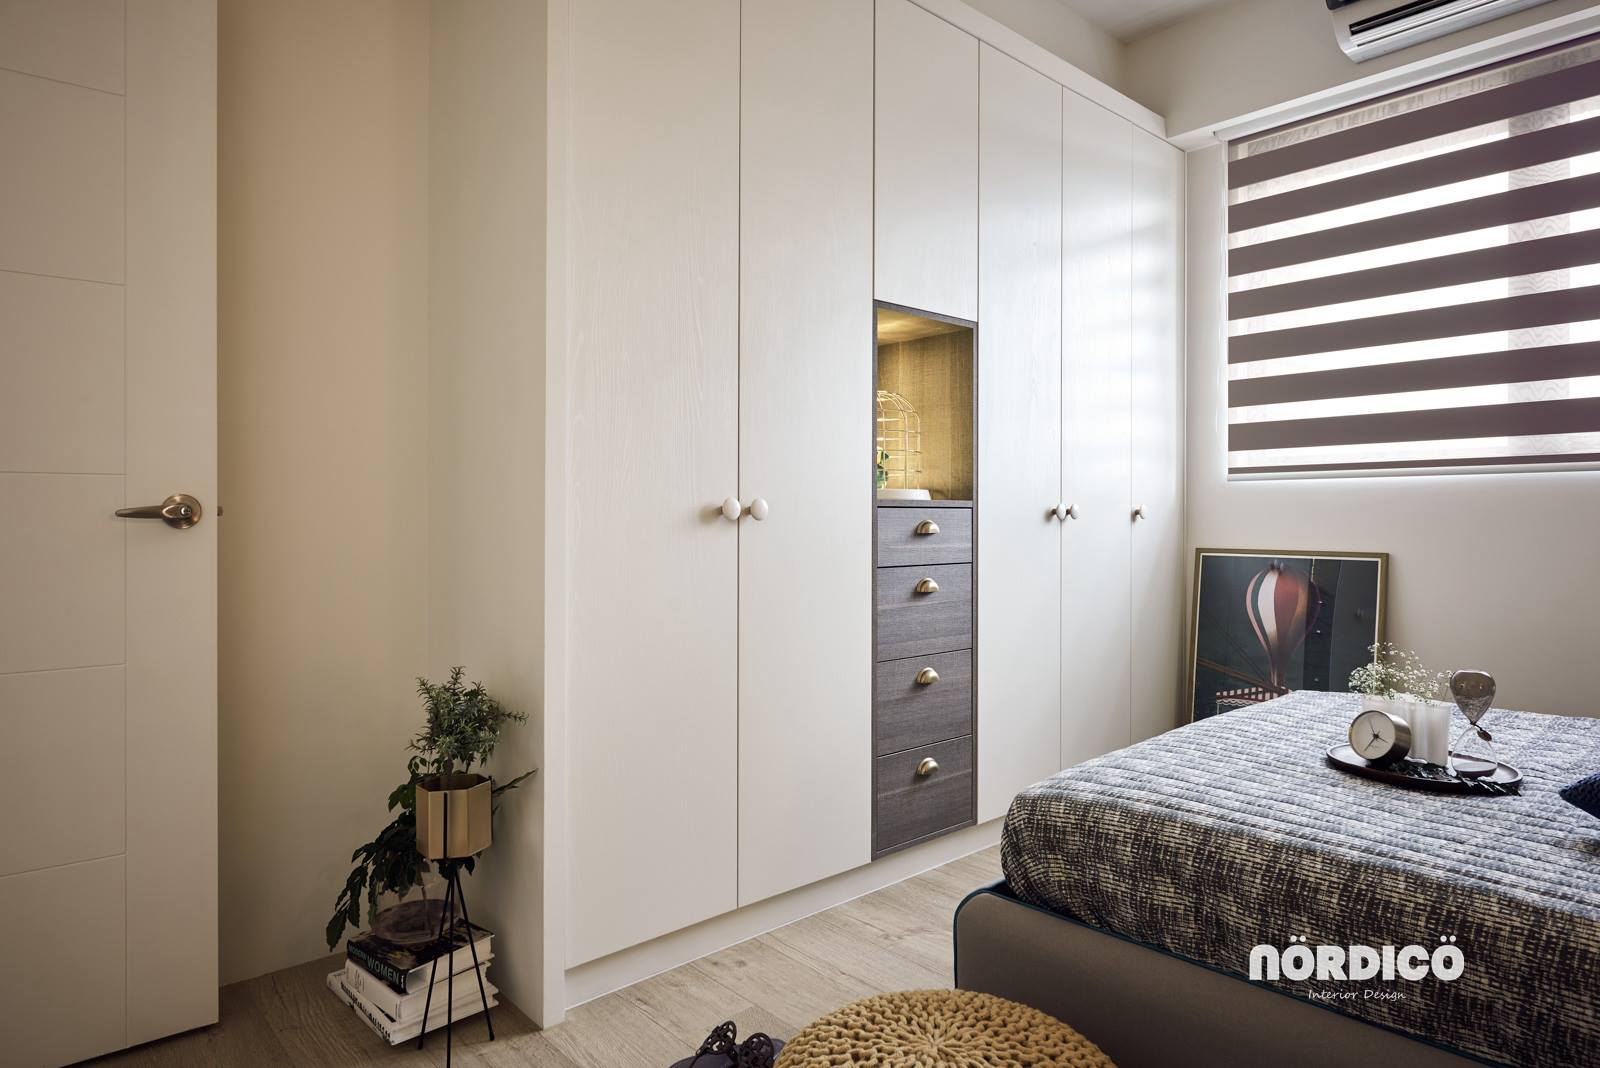 Built In Storage In Simple Bedroom - Nordic decor inspiration in two colorful homes